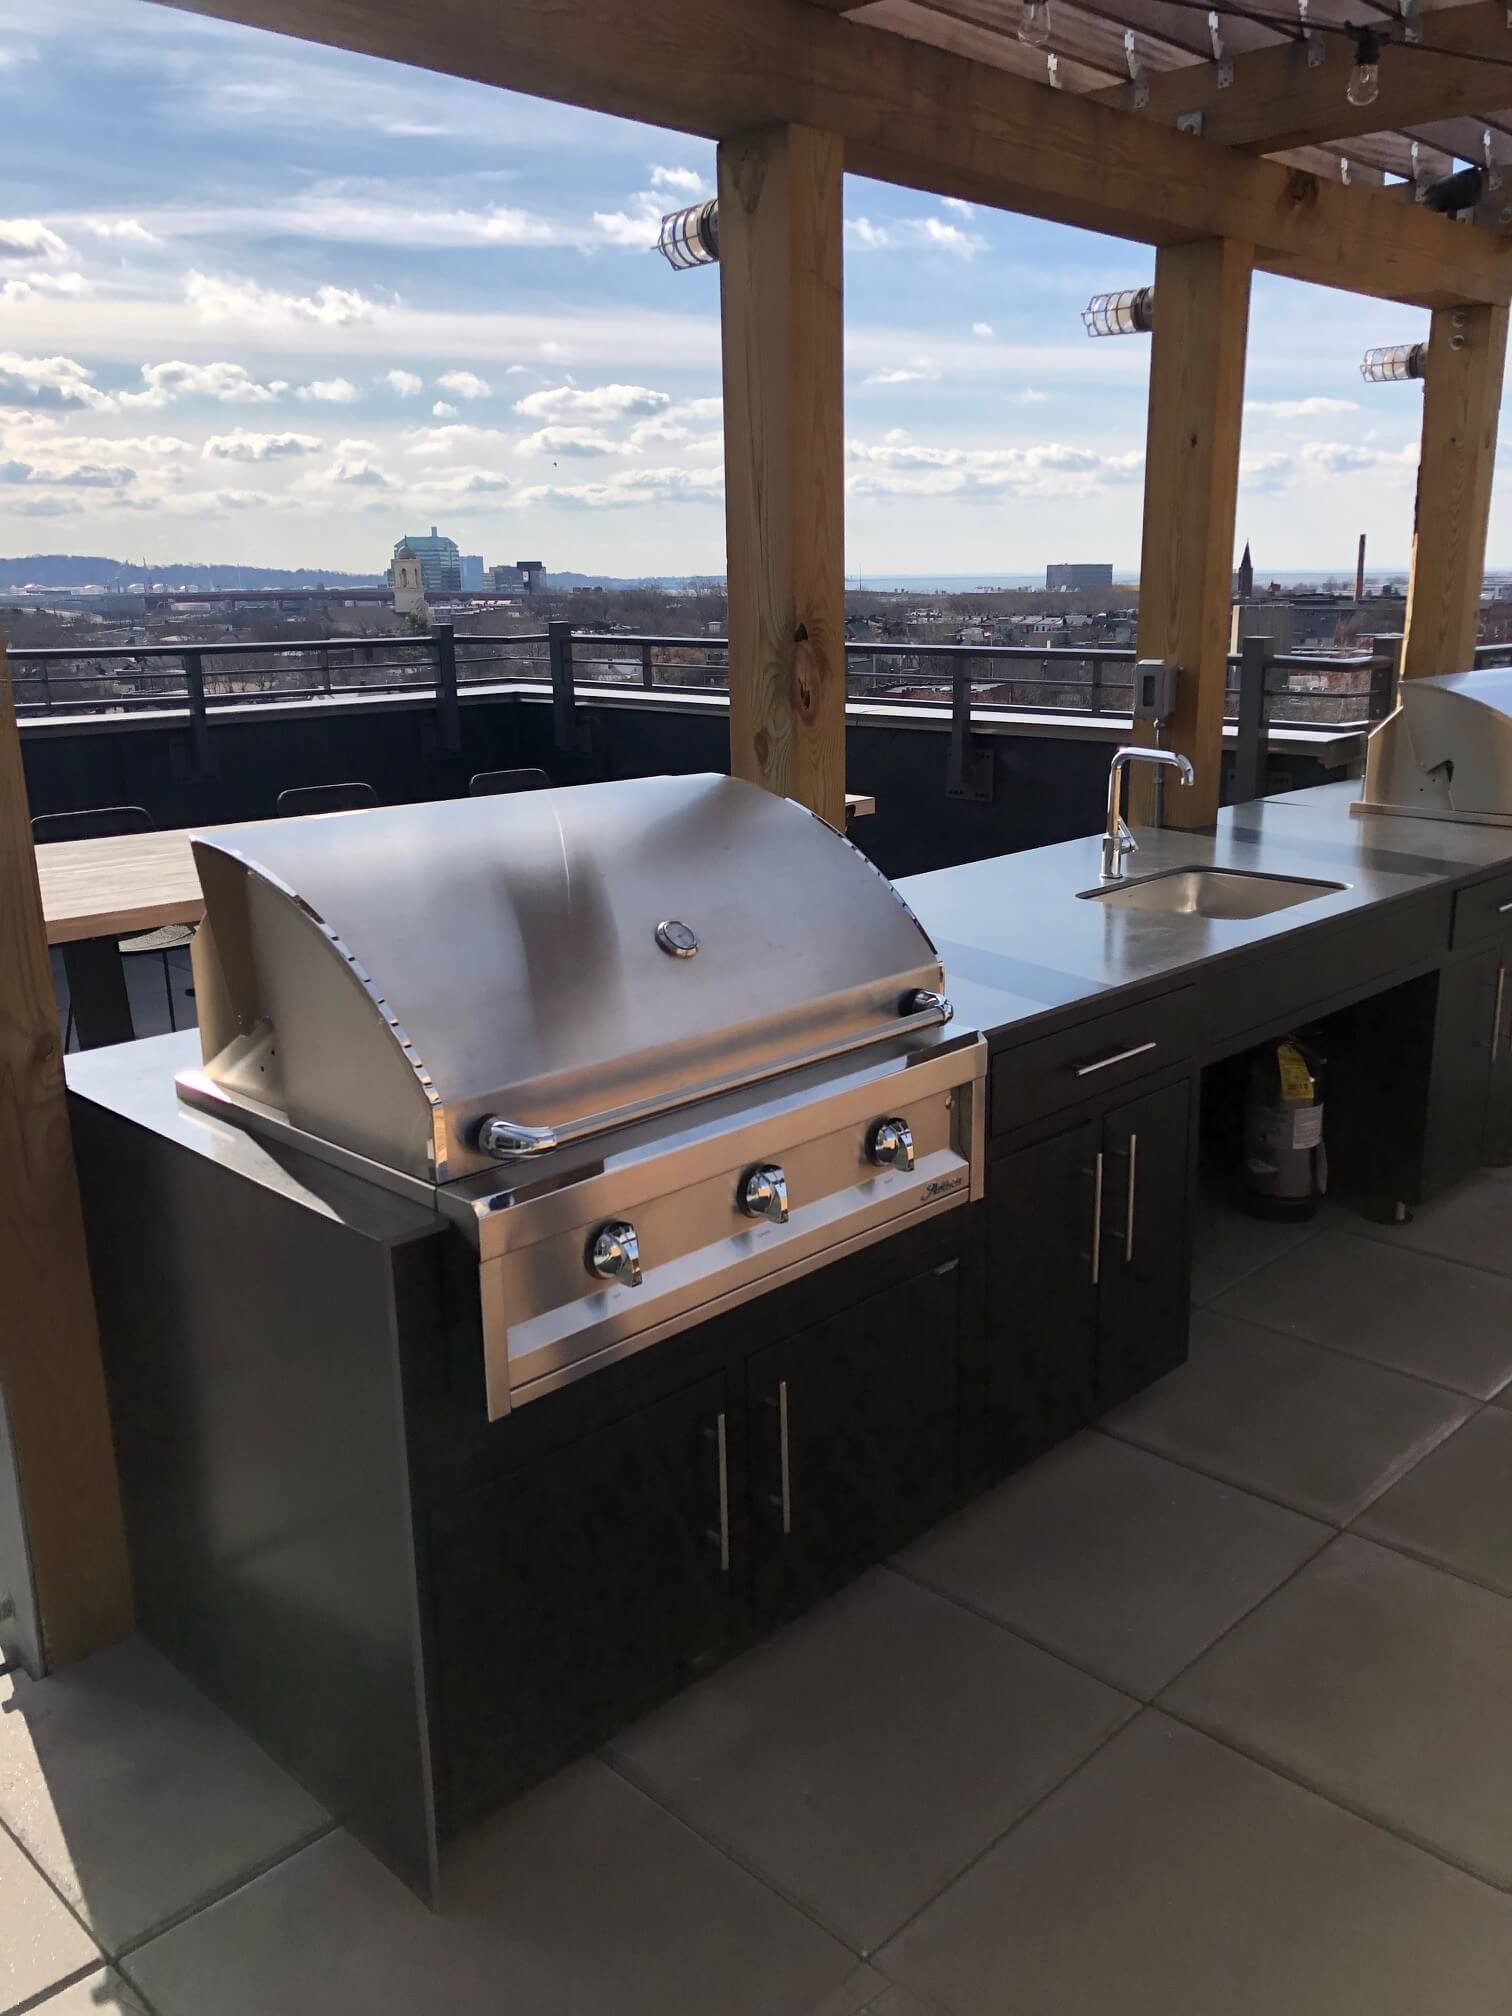 Outdoor Aluminum Kitchen Cabinets are a great entertaining solution for rooftops, patios and decks.